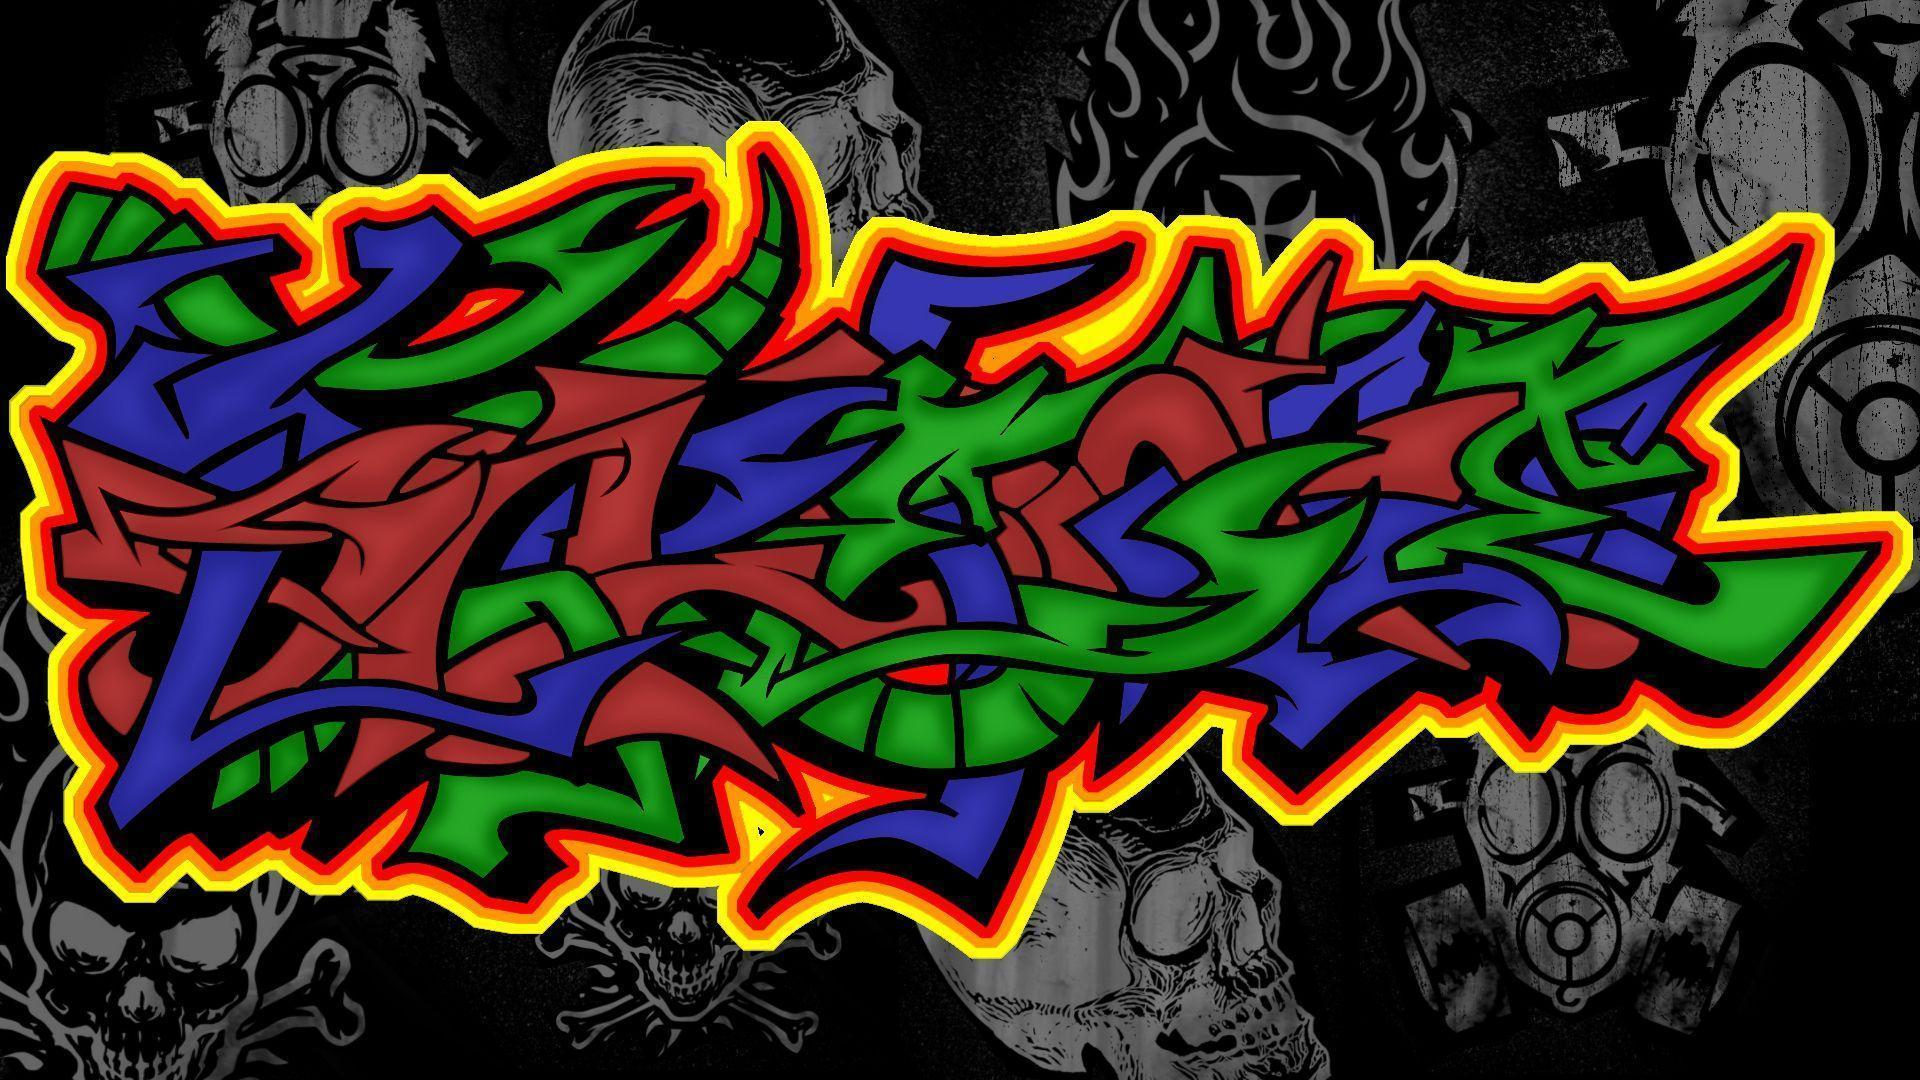 HD Graffiti Wallpapers 1080p - WallpaperSafari